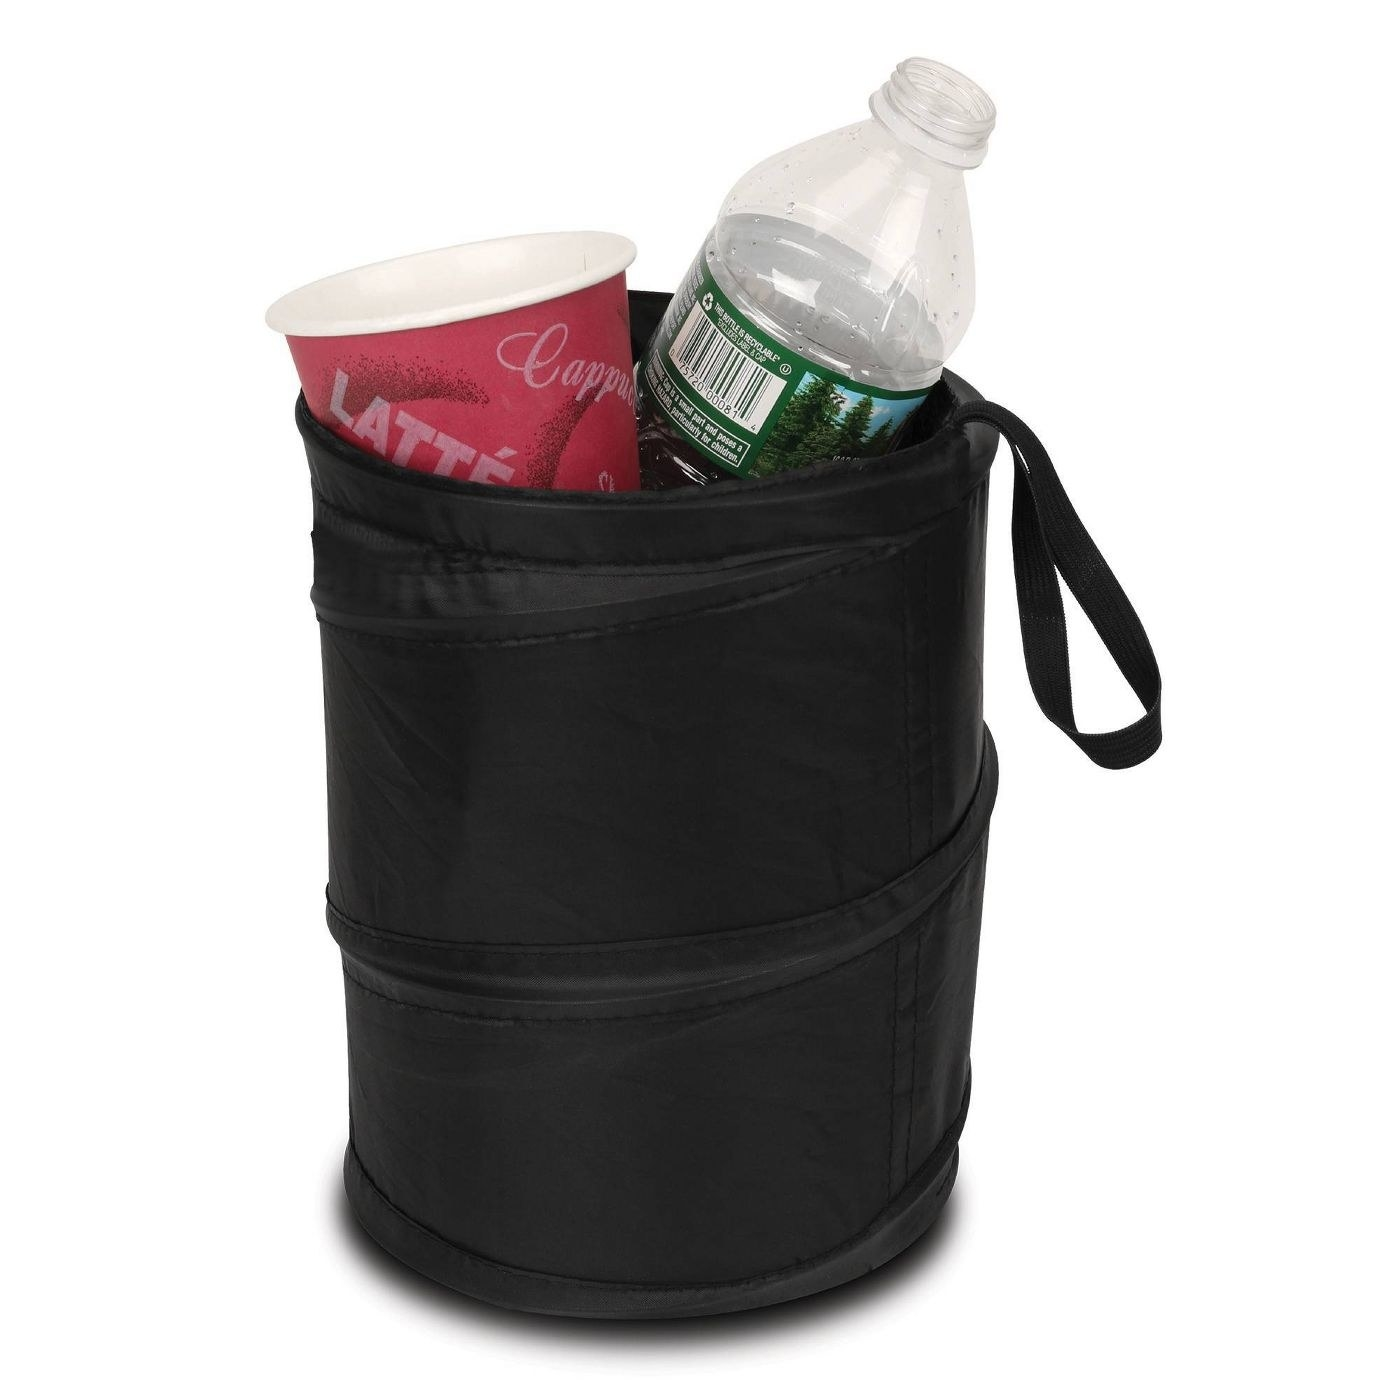 The small collapsible waste basket